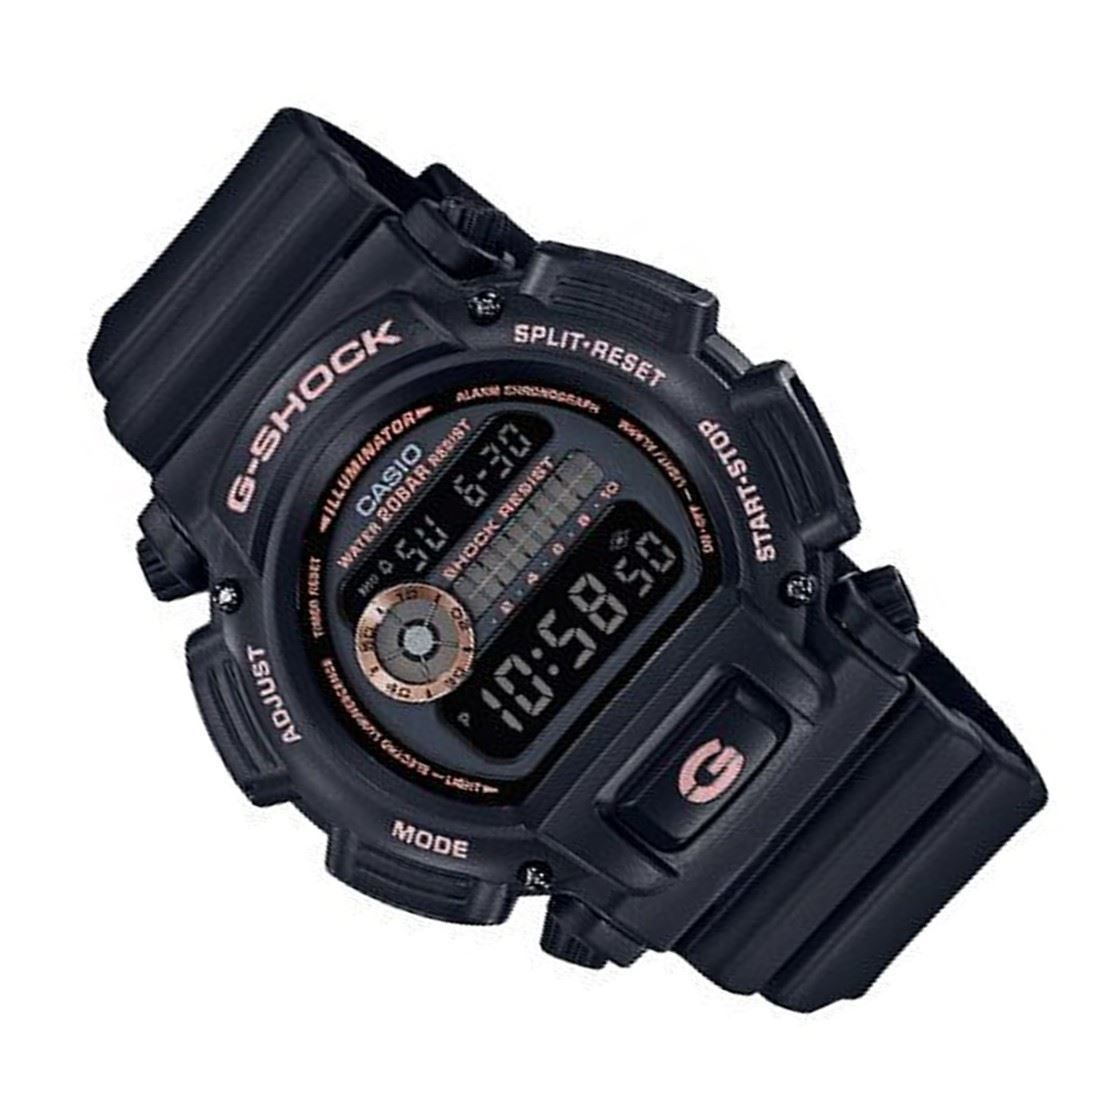 Casio G-Shock Analog Digital Watch Fast shipping to US Canada UK Australia  Switzerland Denmark Netherlands Germany New Zealand c8f407a1d8